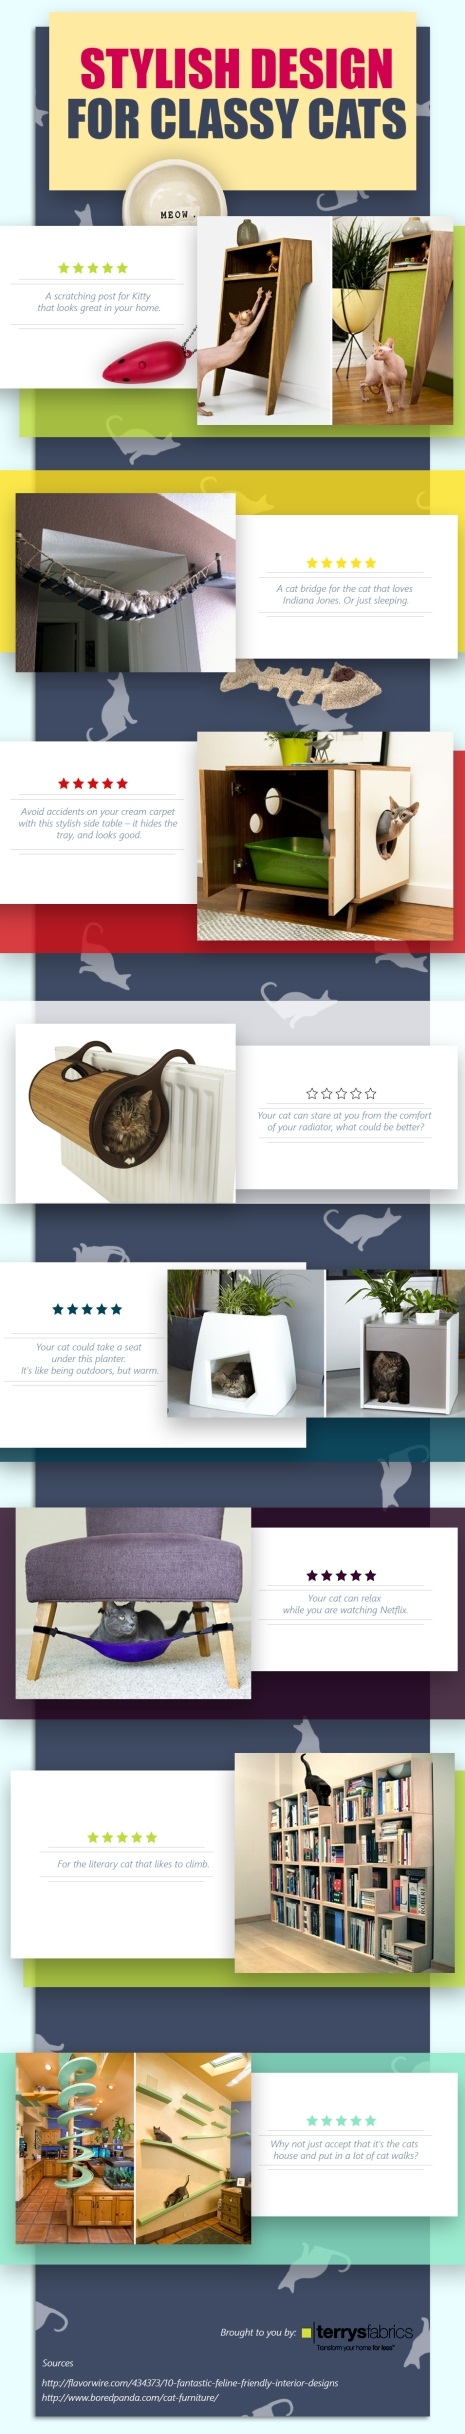 stylish-design-for-classy-cats